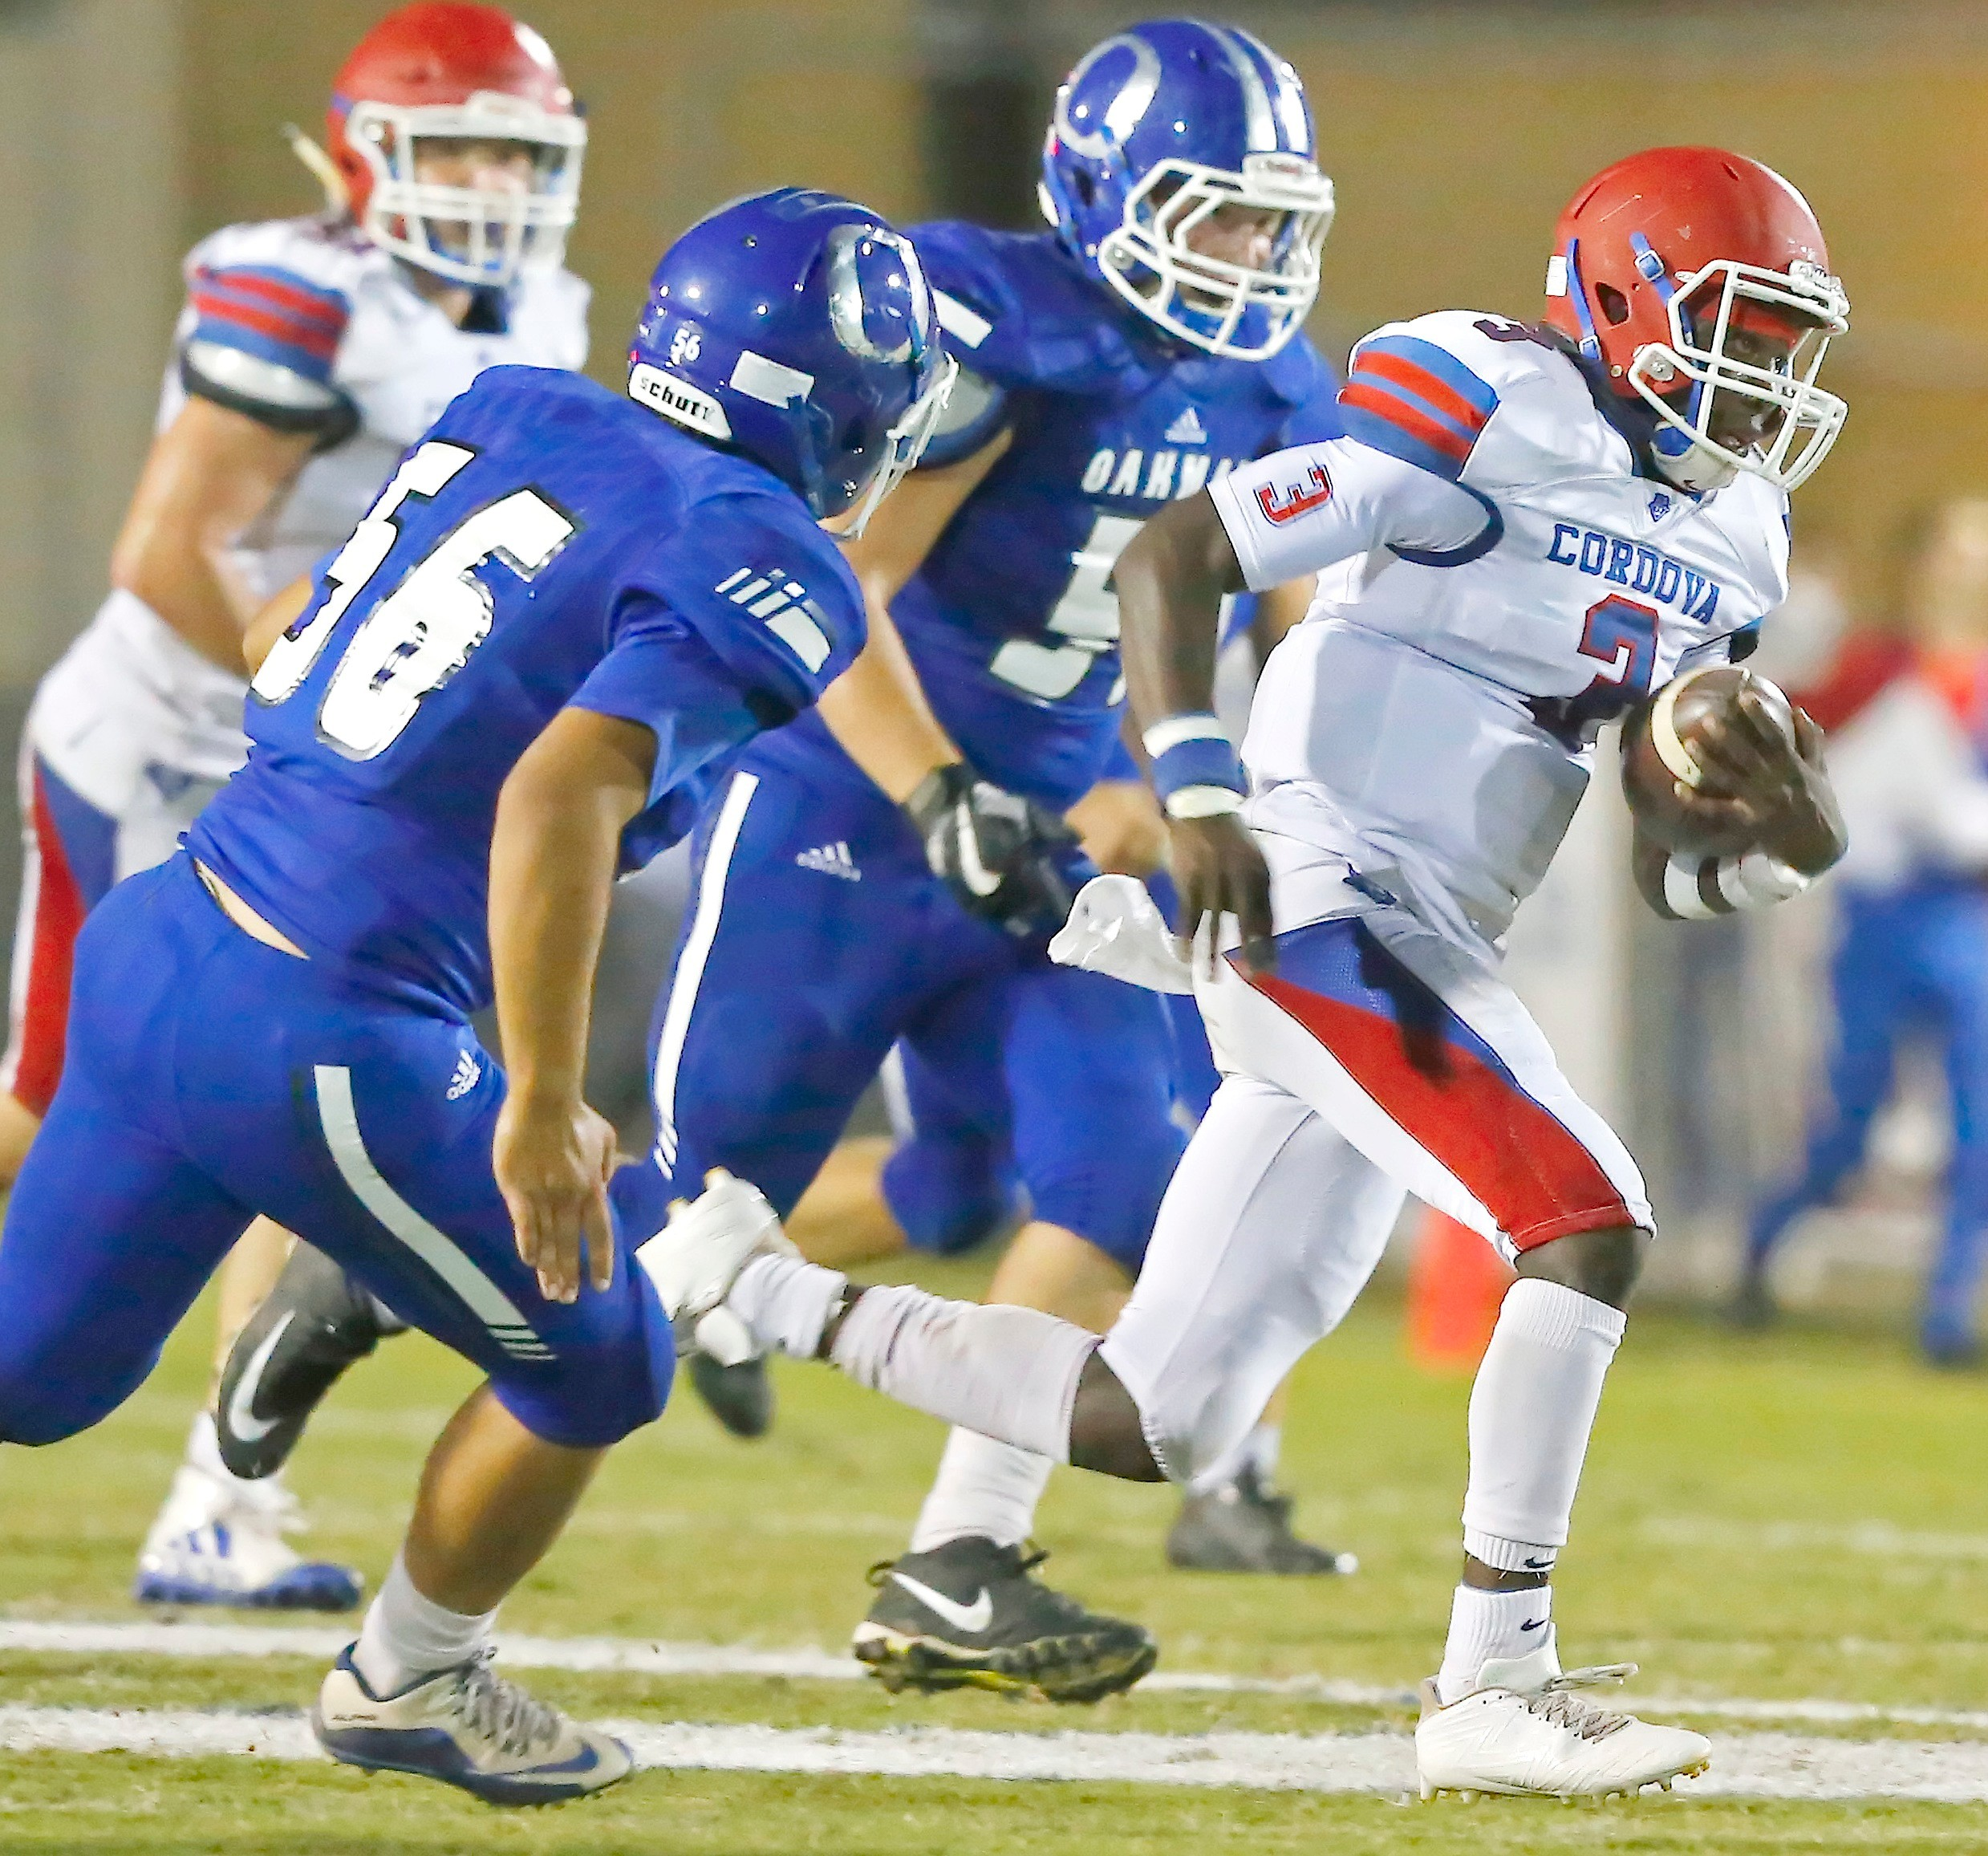 Cordova's Demetrius Kirk, right, picks up yardage against Oakman on Friday night. Kirk totaled 301 yards of offense in the Blue Devils' 20-15 victory at Oakman High School. Cordova has won three straight games.